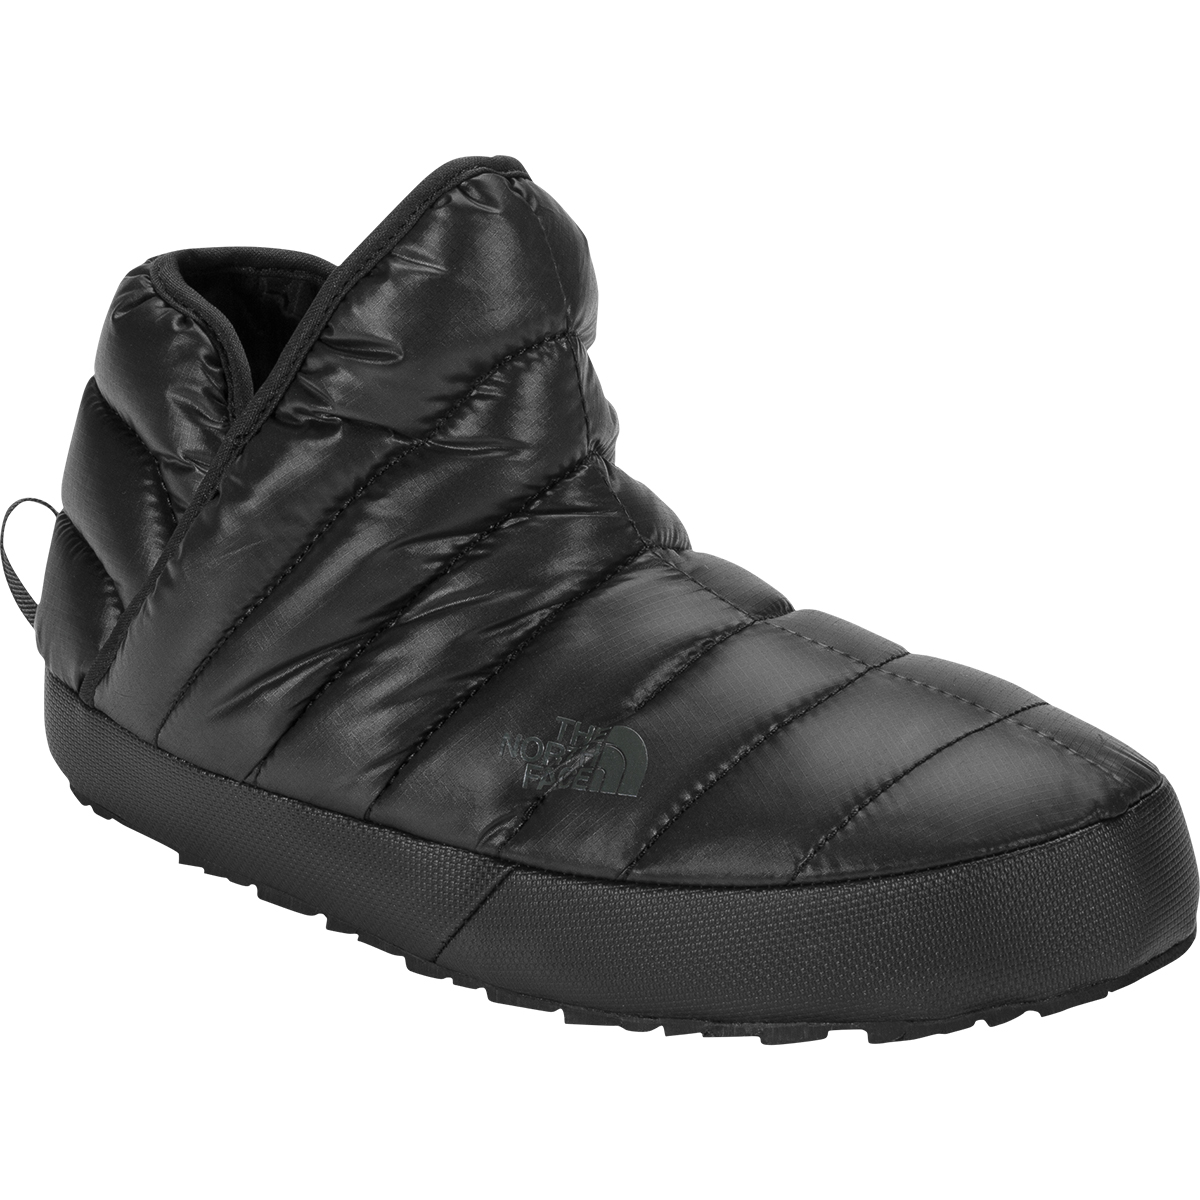 The North Face Women's Thermoball Traction Booties - Black, 9